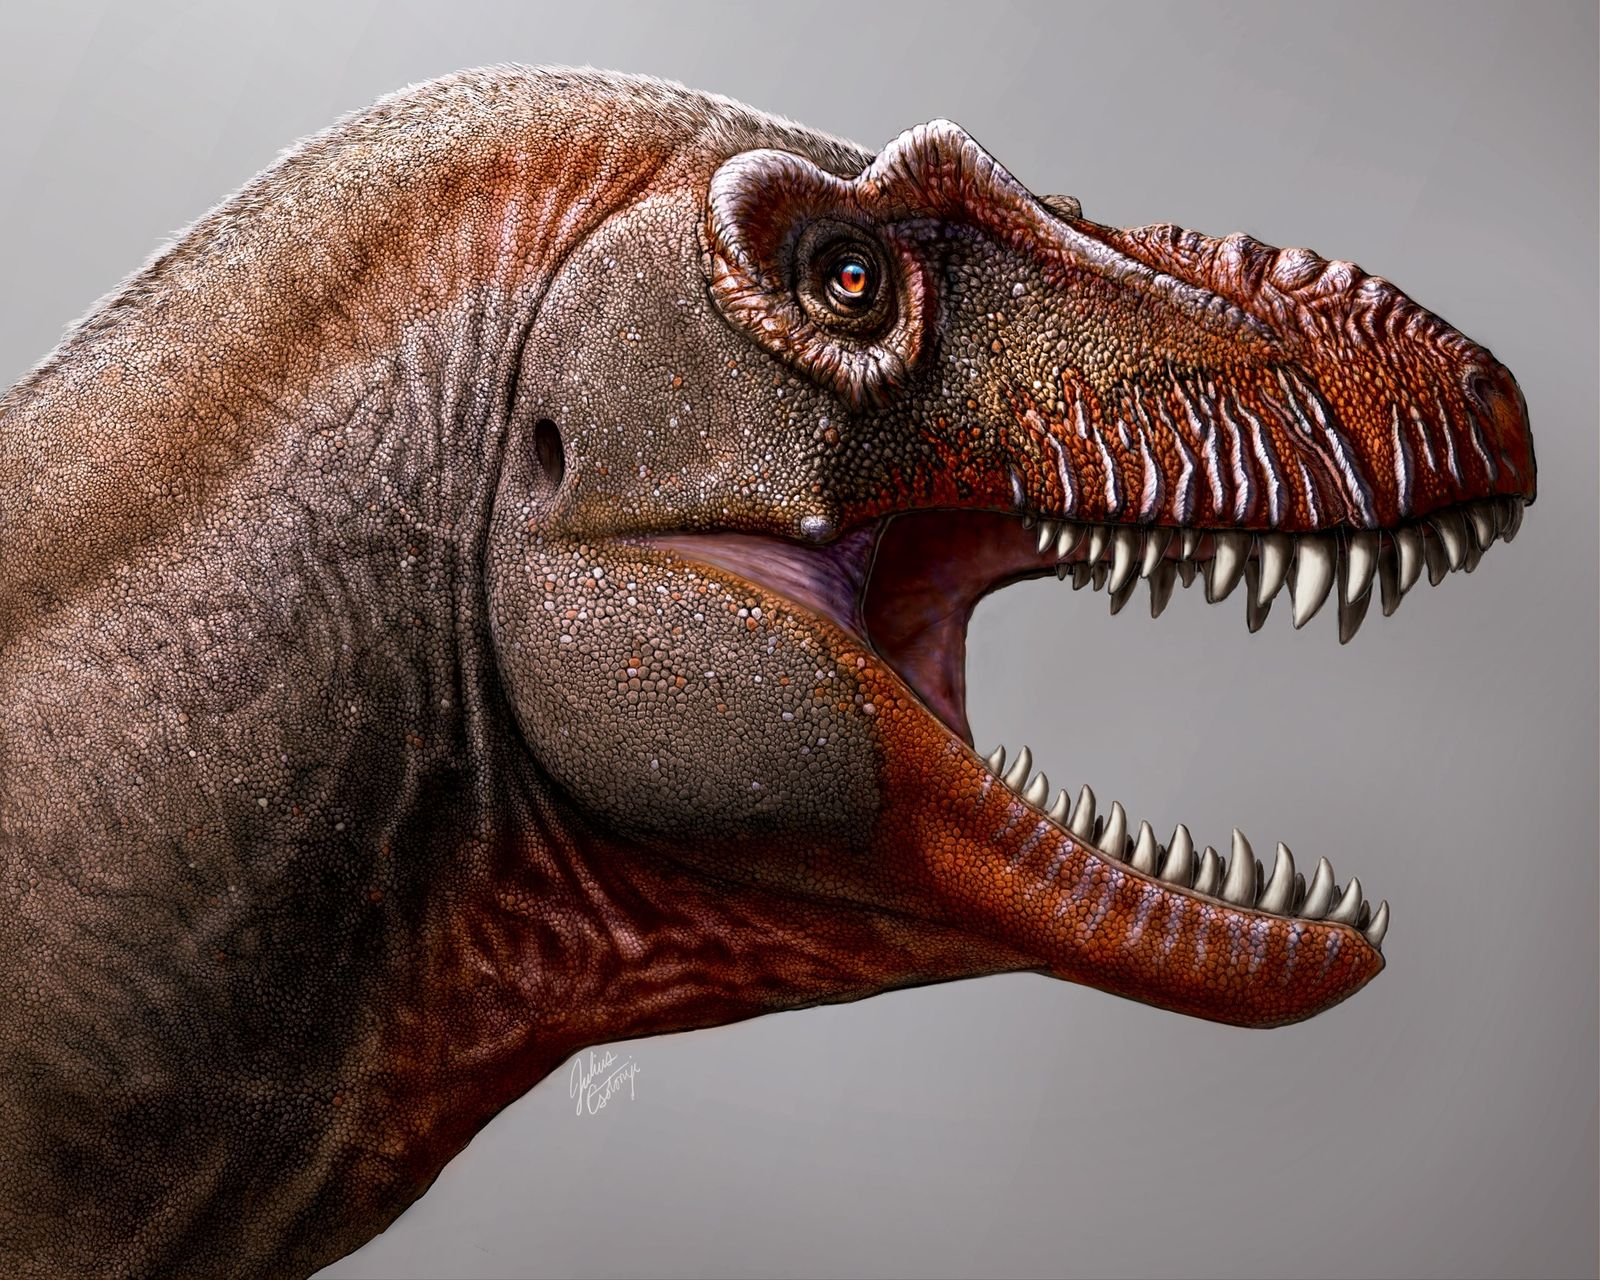 'Reaper of Death' tyrannosaur discovered in Canada